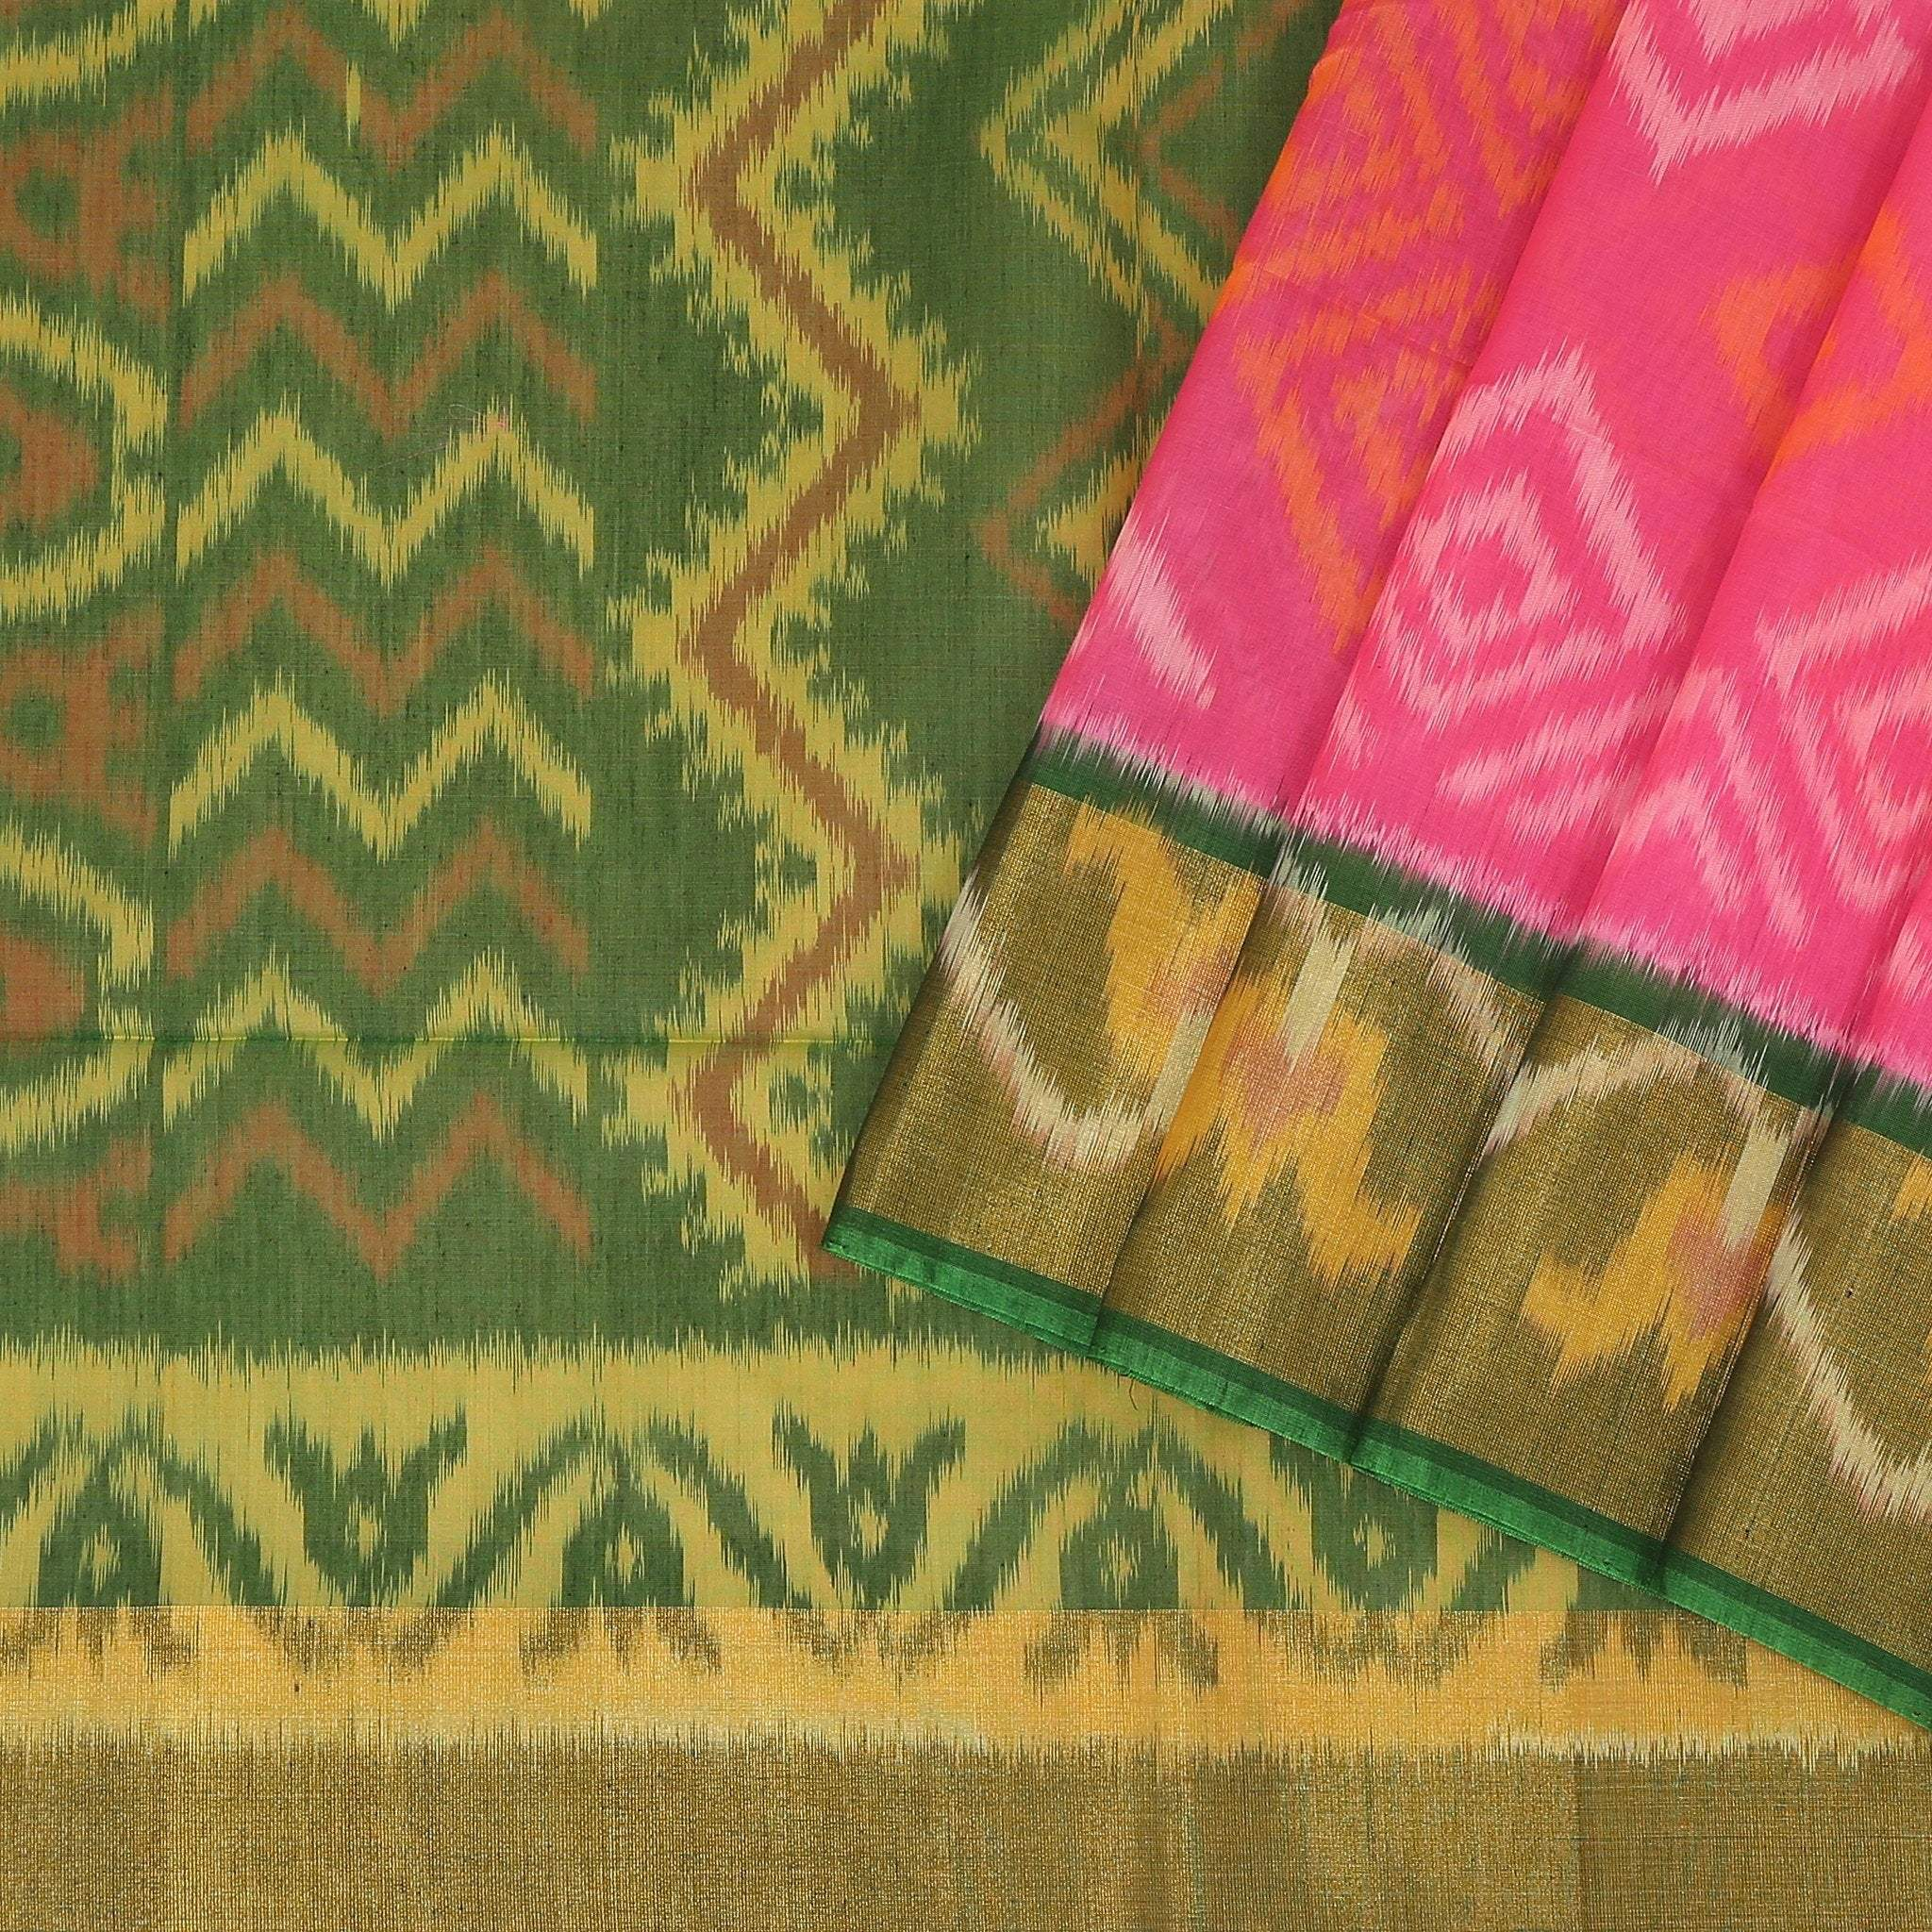 Vivid-Pink-Cotton-Ikkat-Saree.